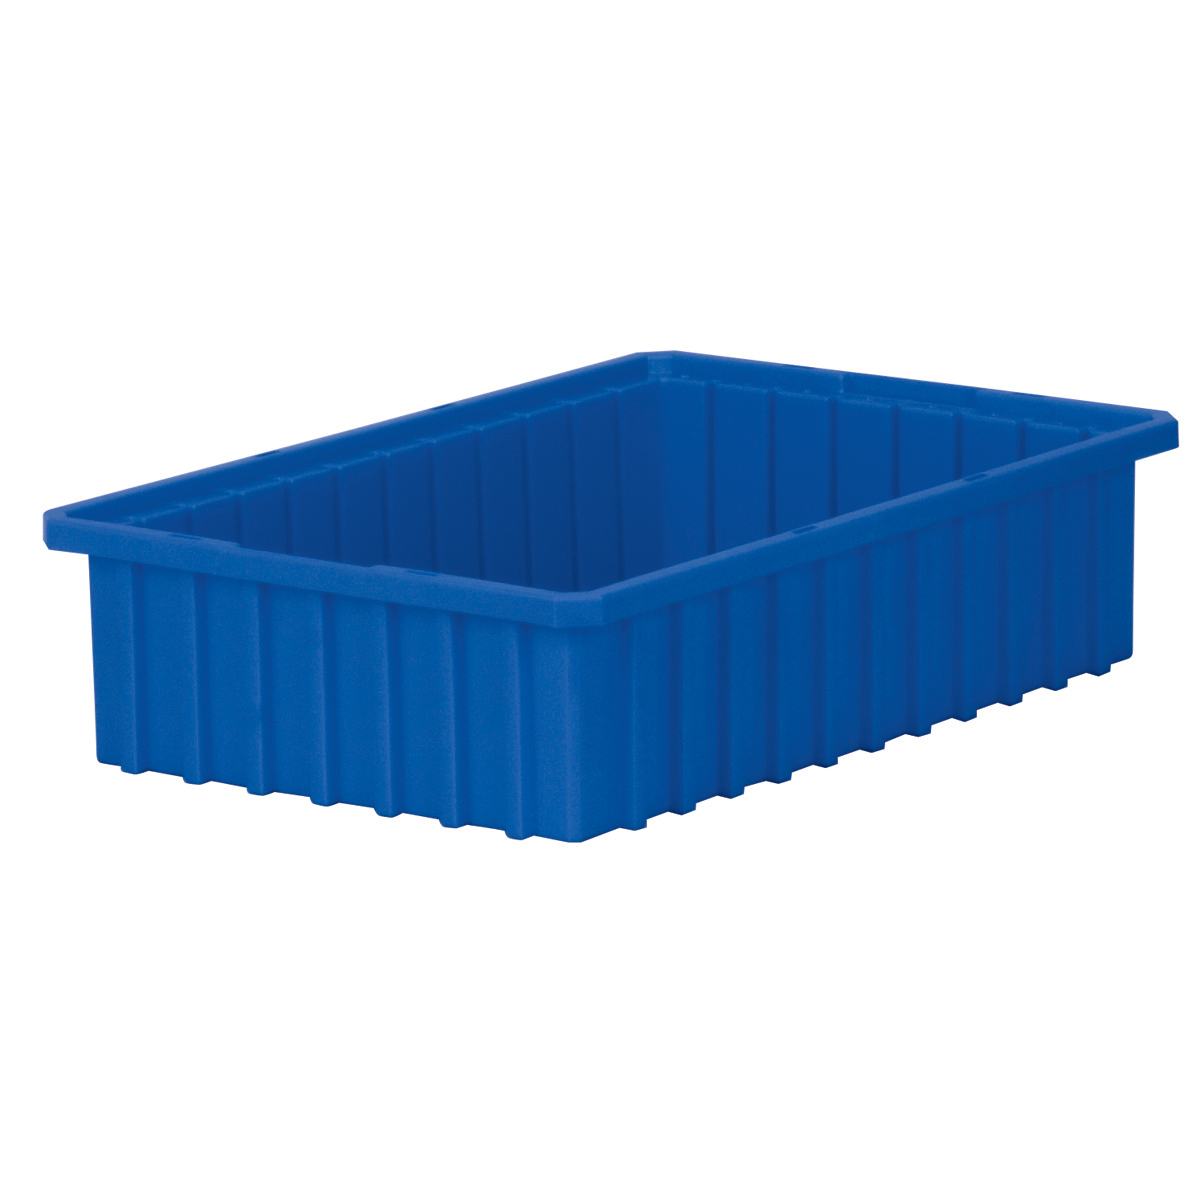 Akro-Grid Dividable Box 16-1/2 x 10-7/8 x 4, Blue (33164BLUE).  This item sold in carton quantities of 12.